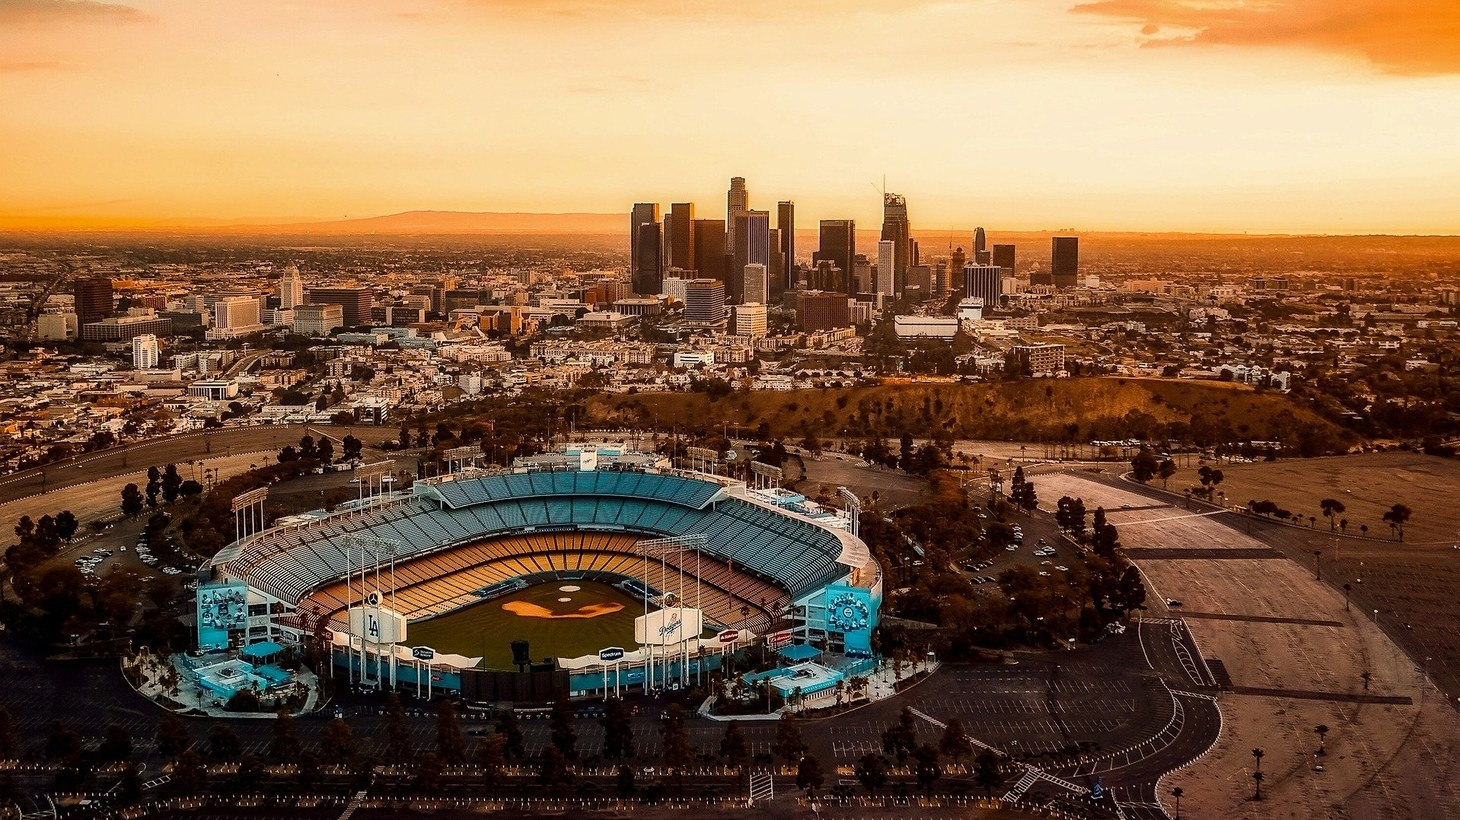 With both Los Angeles County and Orange County now in the orange tier of Gov. Gavin Newsom's reopening plan, teams can sell tickets up to 33% capacity.